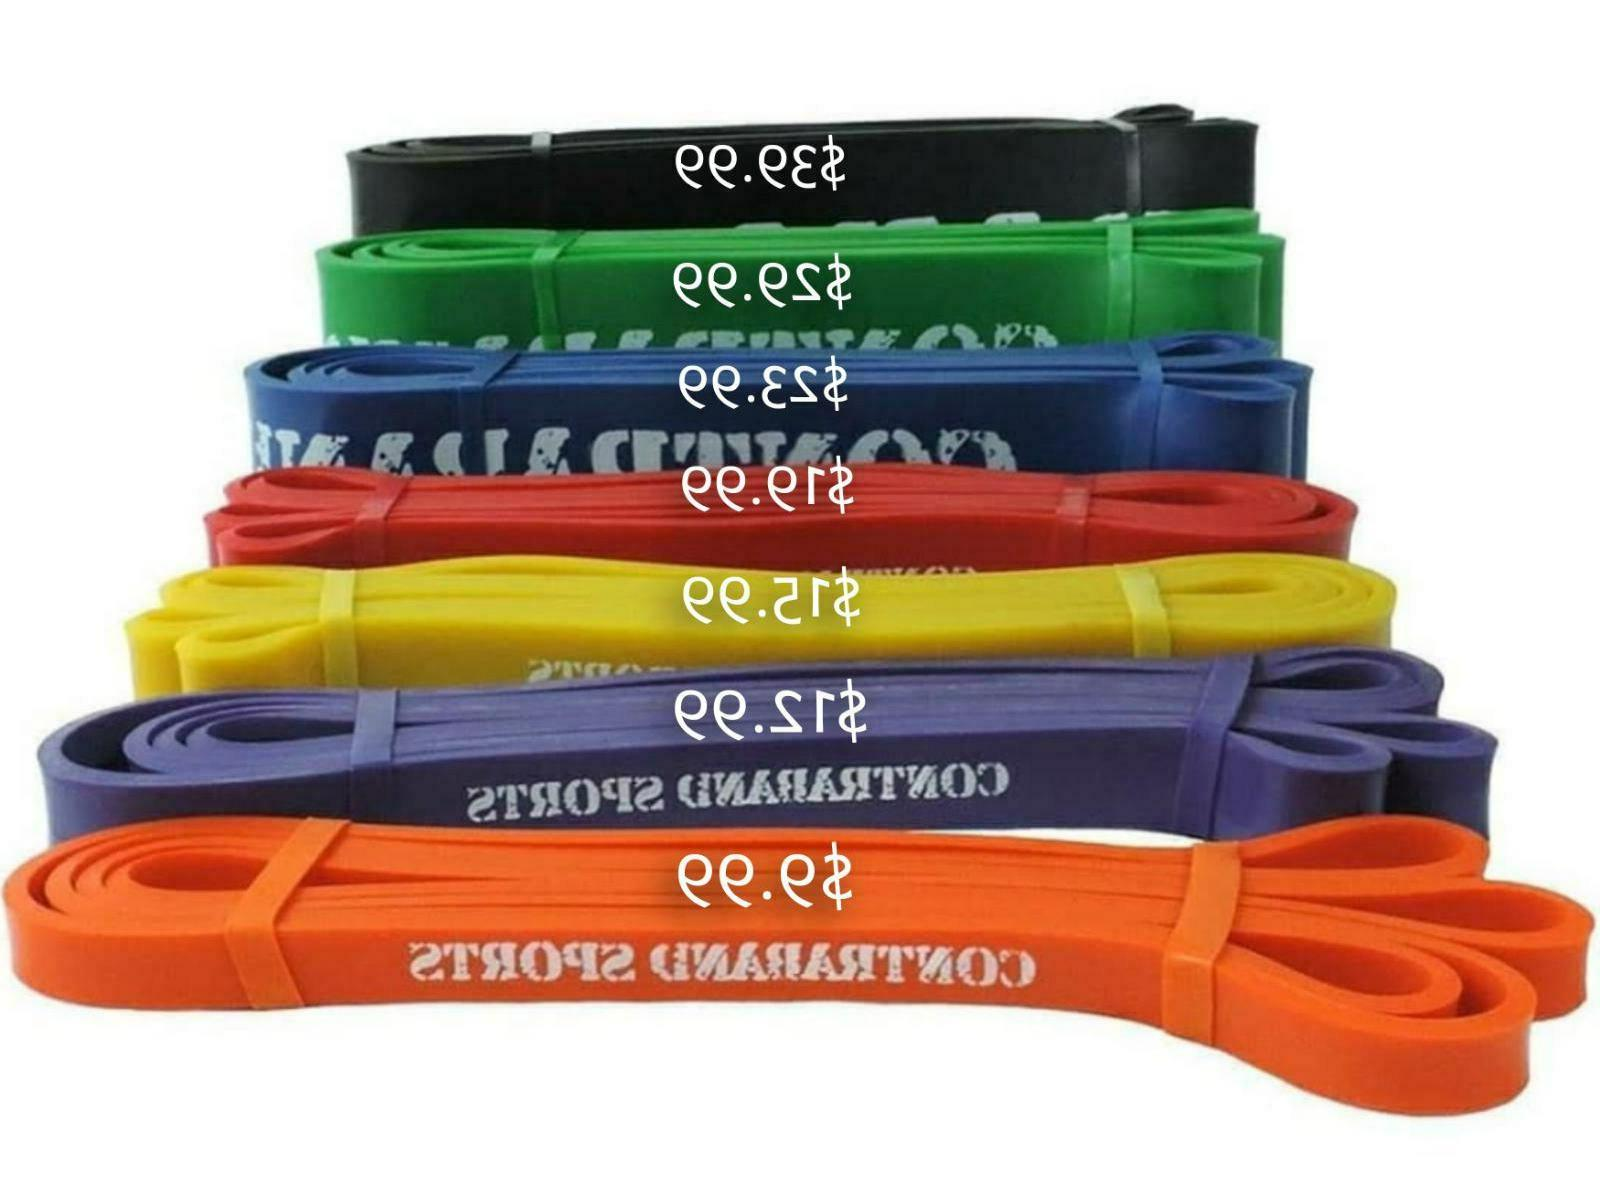 7419 41in resistance bands powerlifting bands pullup